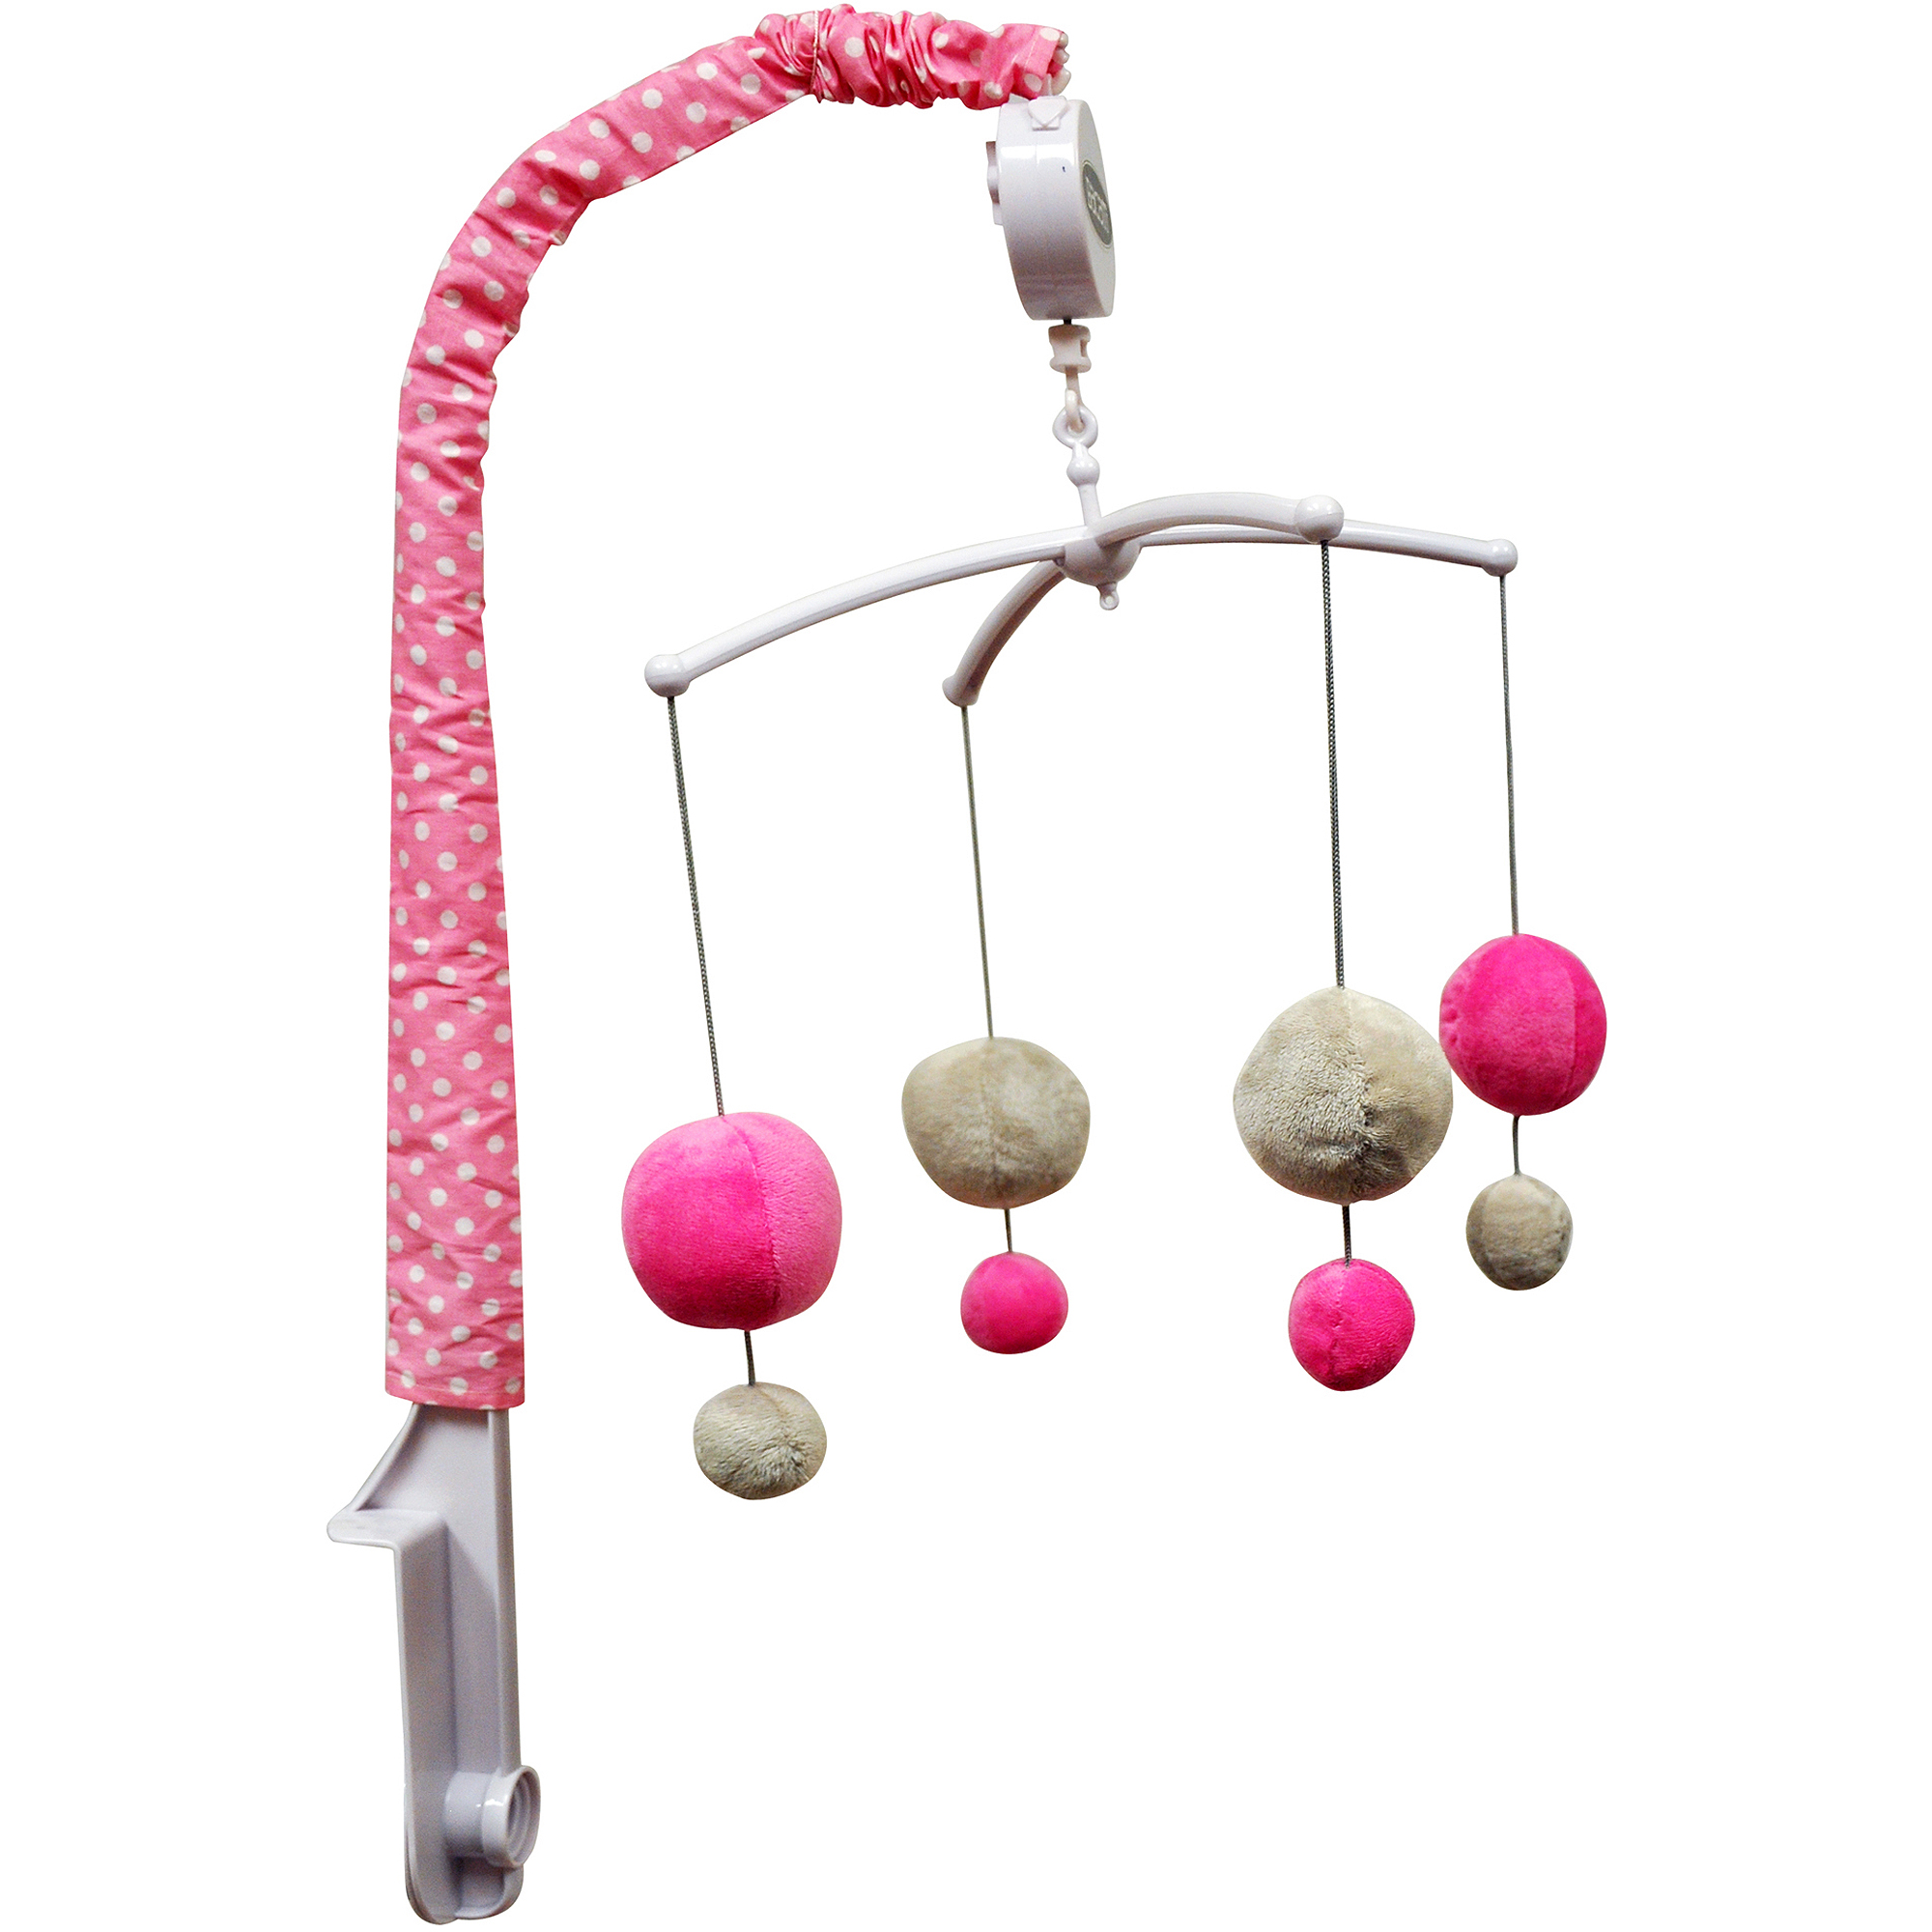 Bacati - Dots Musical Mobile with Hanging Toys, Gray/Pink